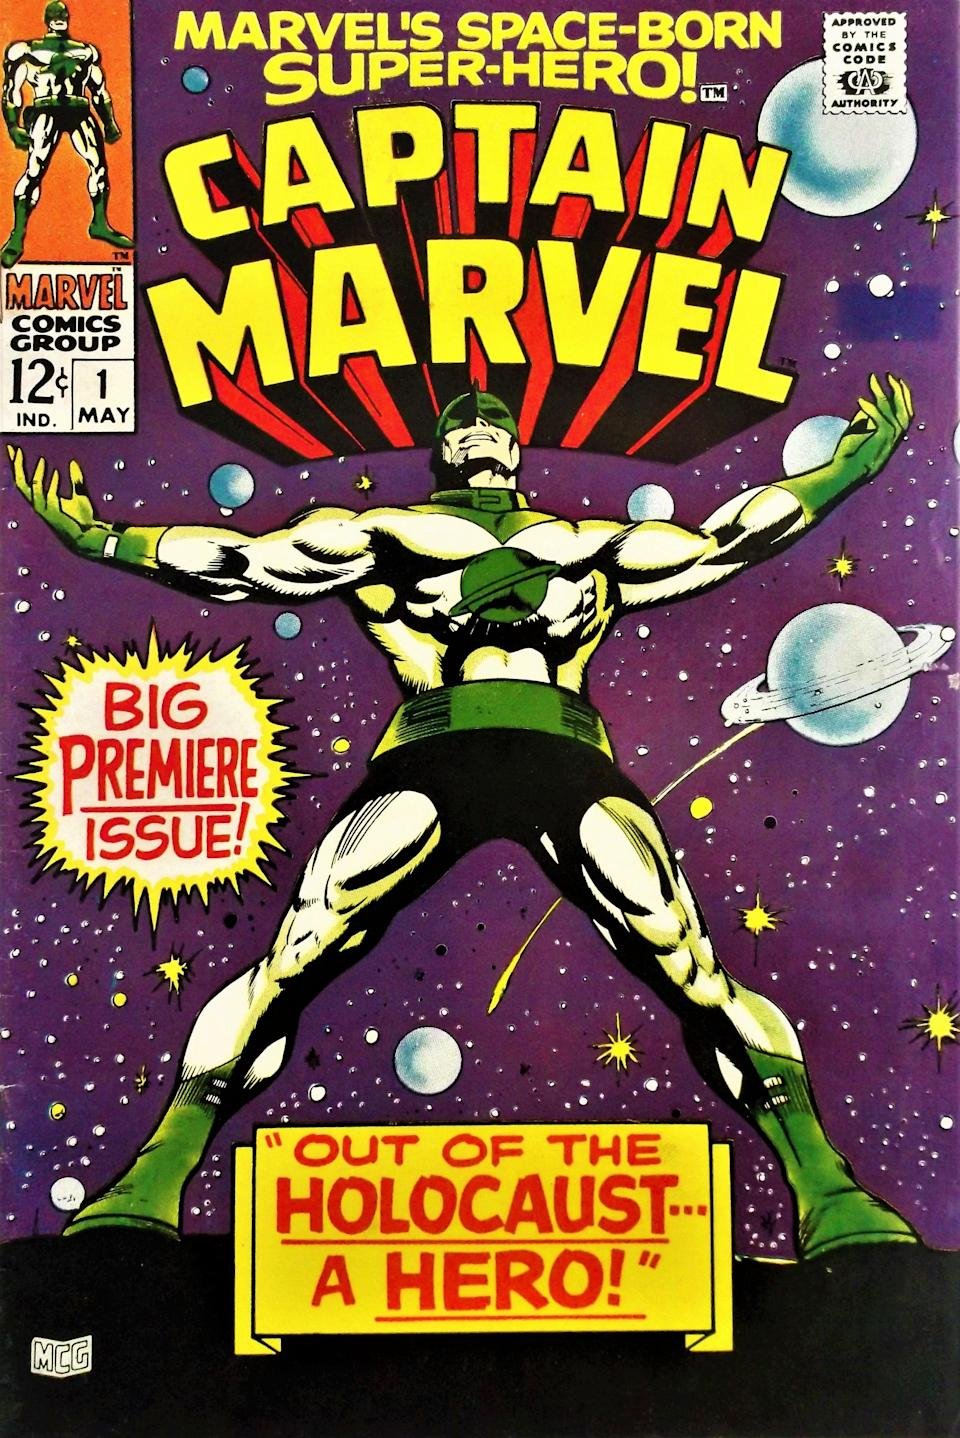 Marvel Comics' Captain Marvel was introduced in 1968. (Photo: Marvel)